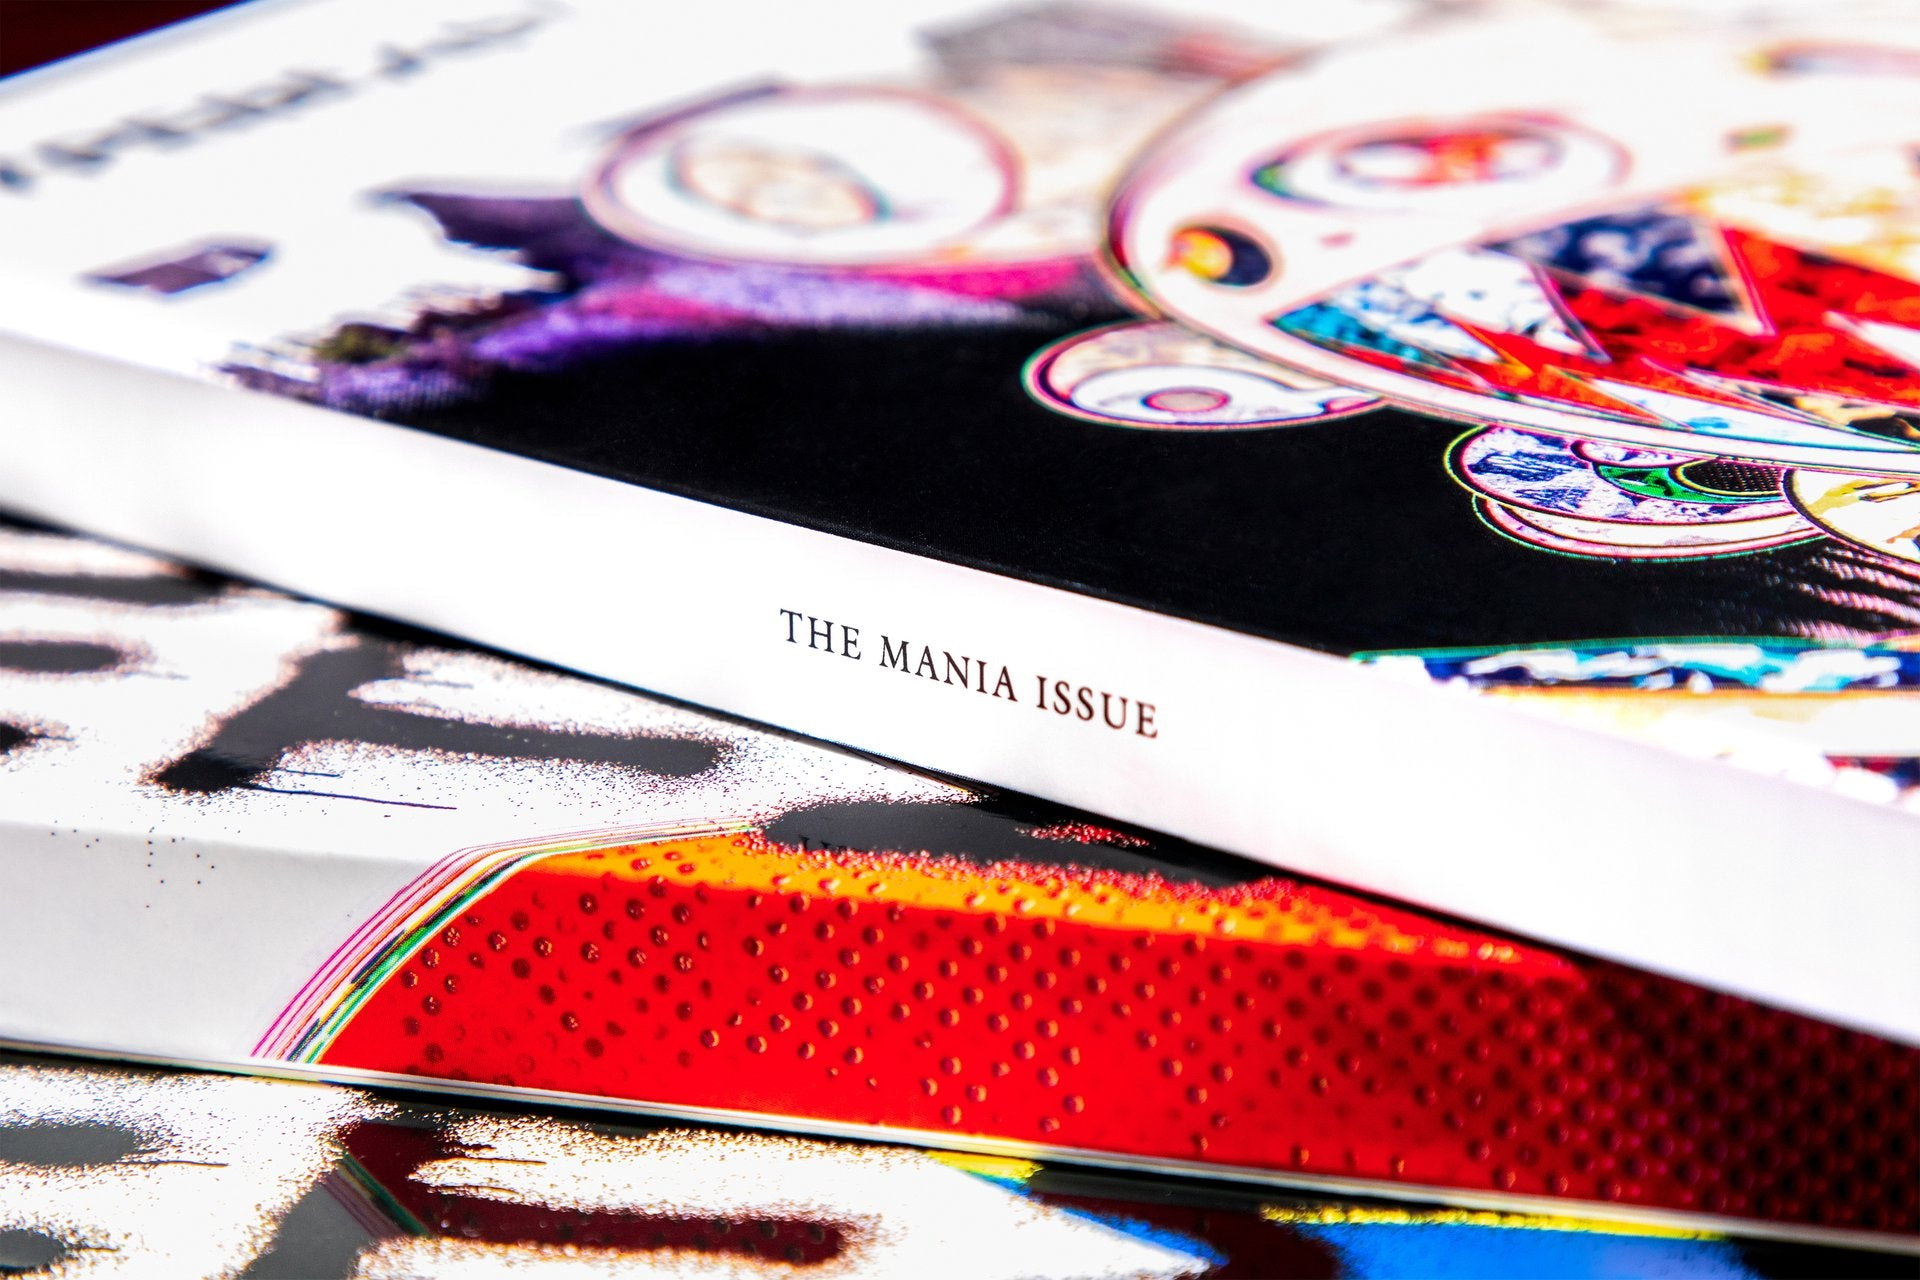 ISSUE 25: THE MANIA ISSUE